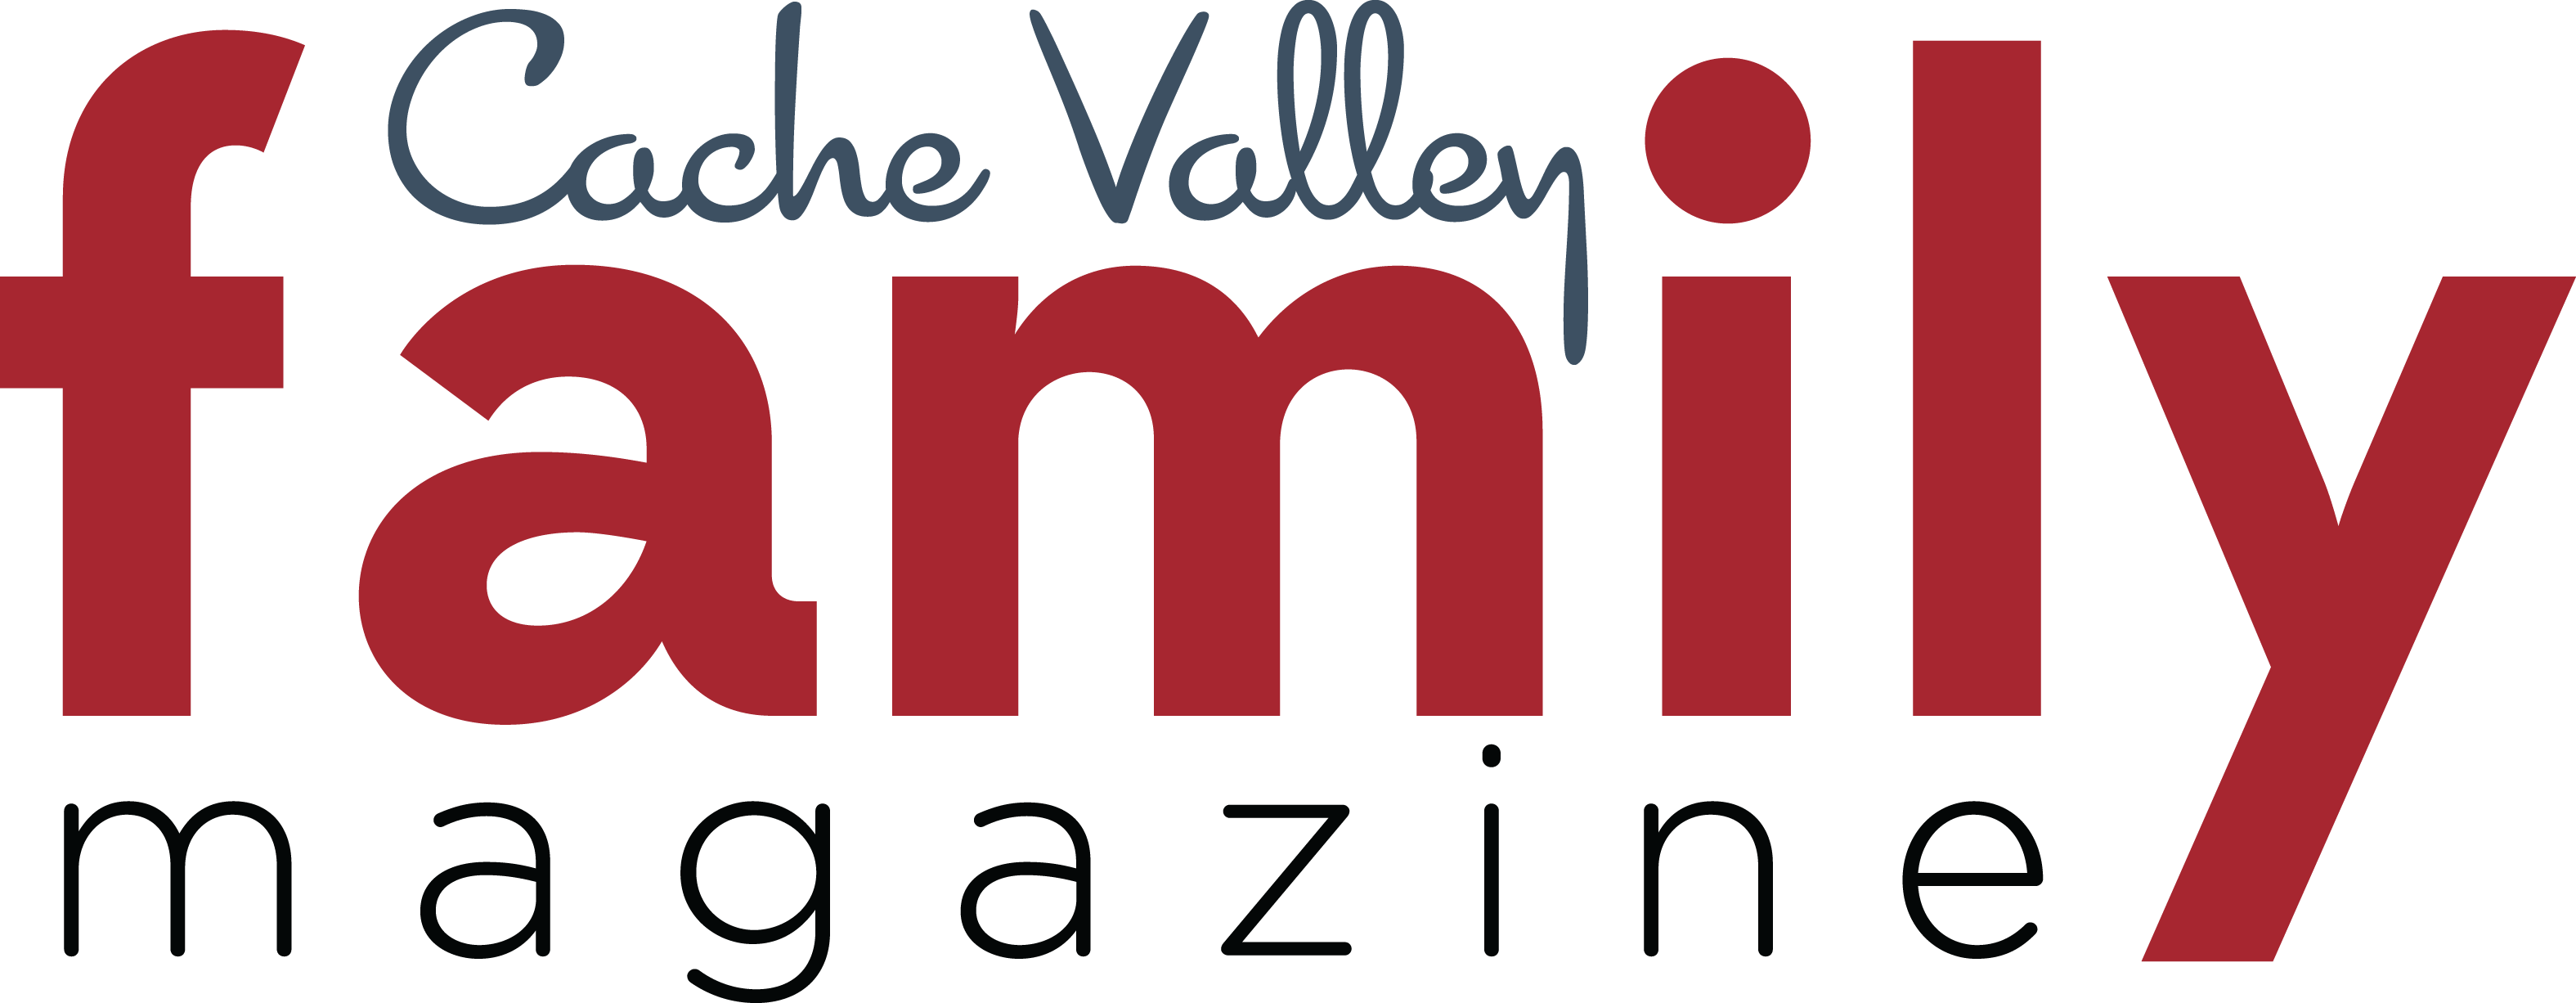 Cache Valley Family Magazine